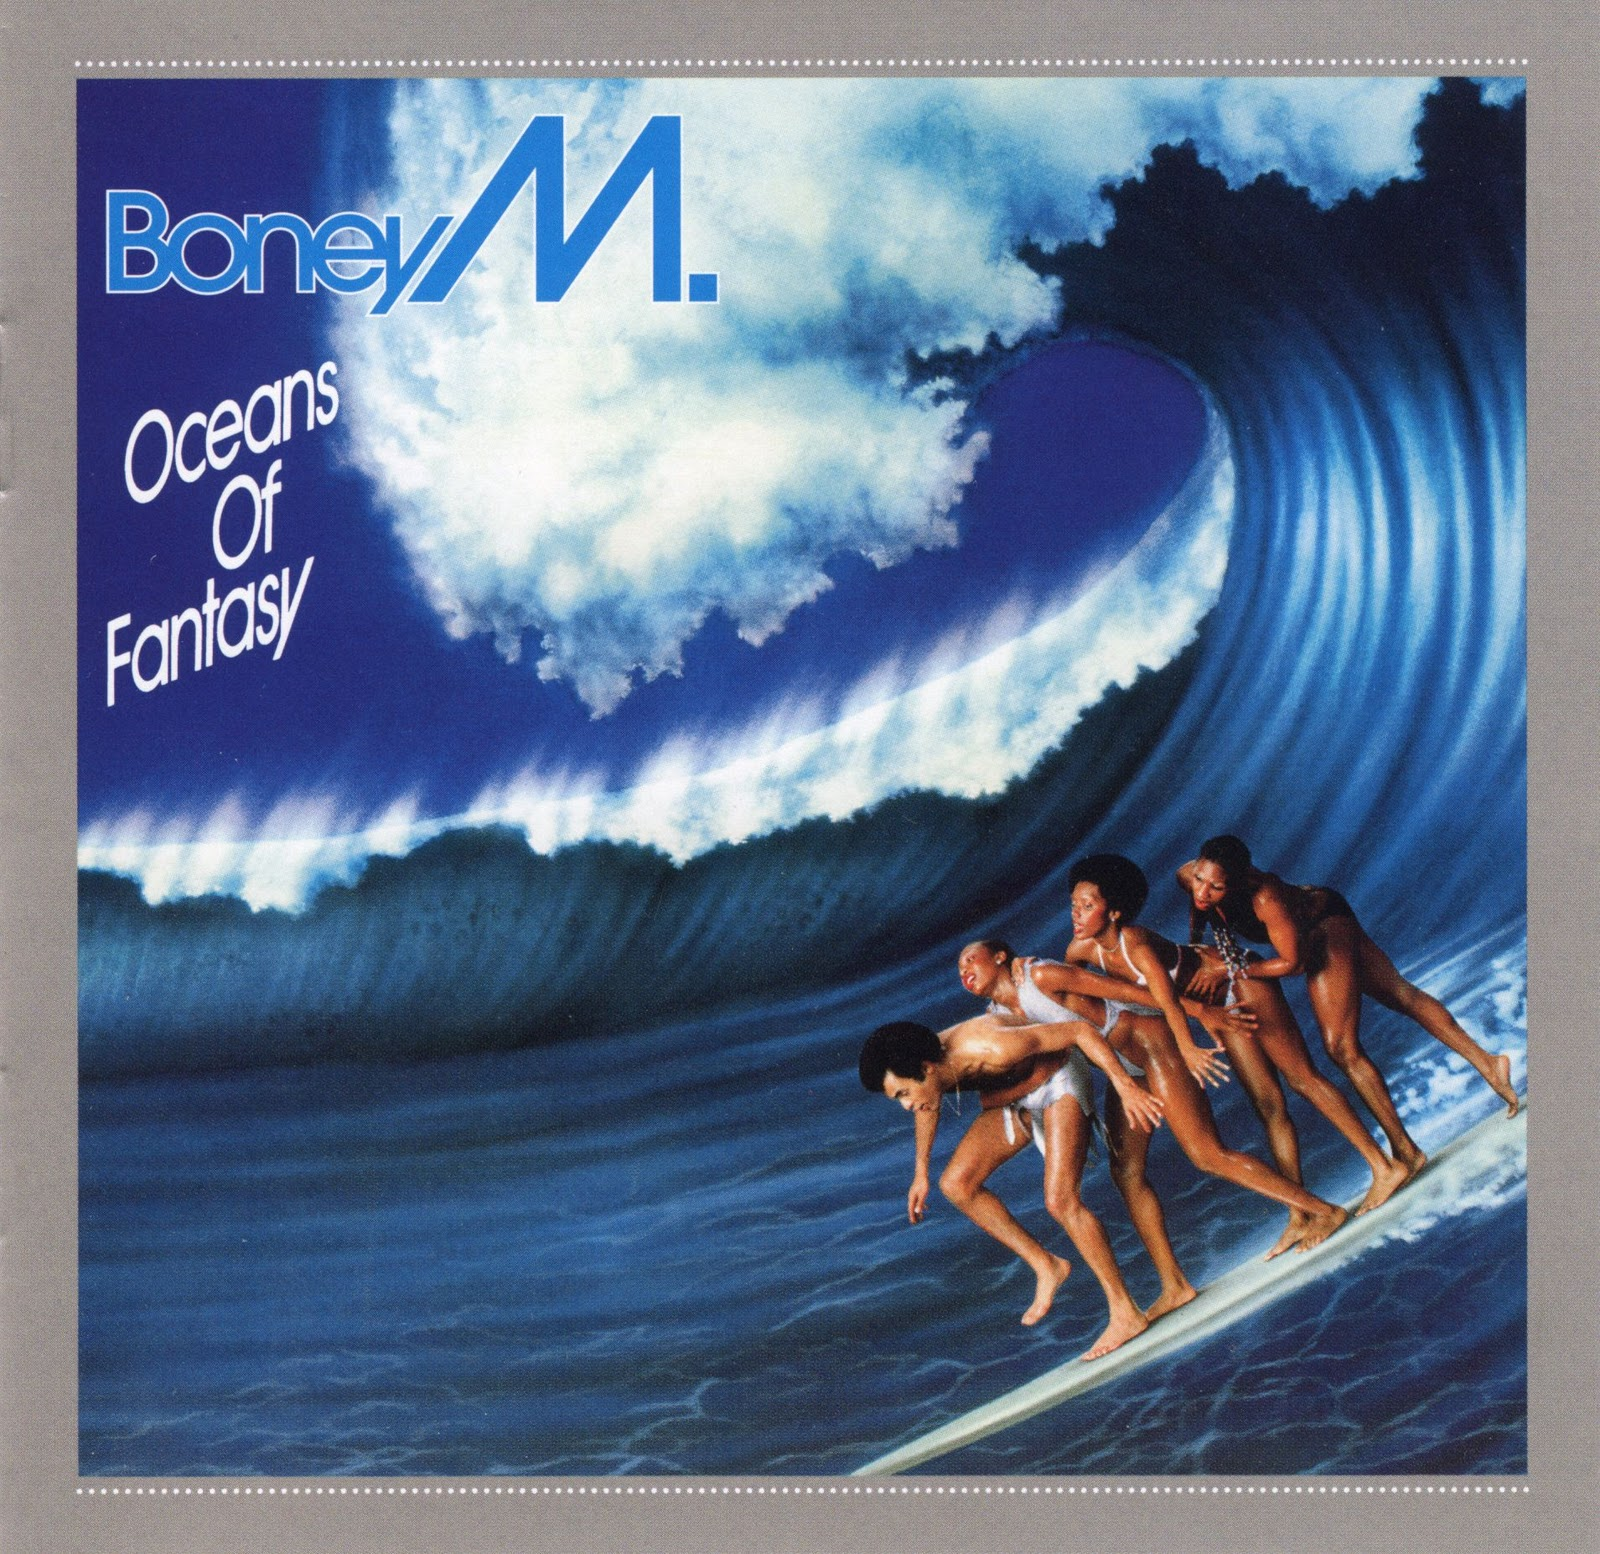 Boney m take the heat off me album